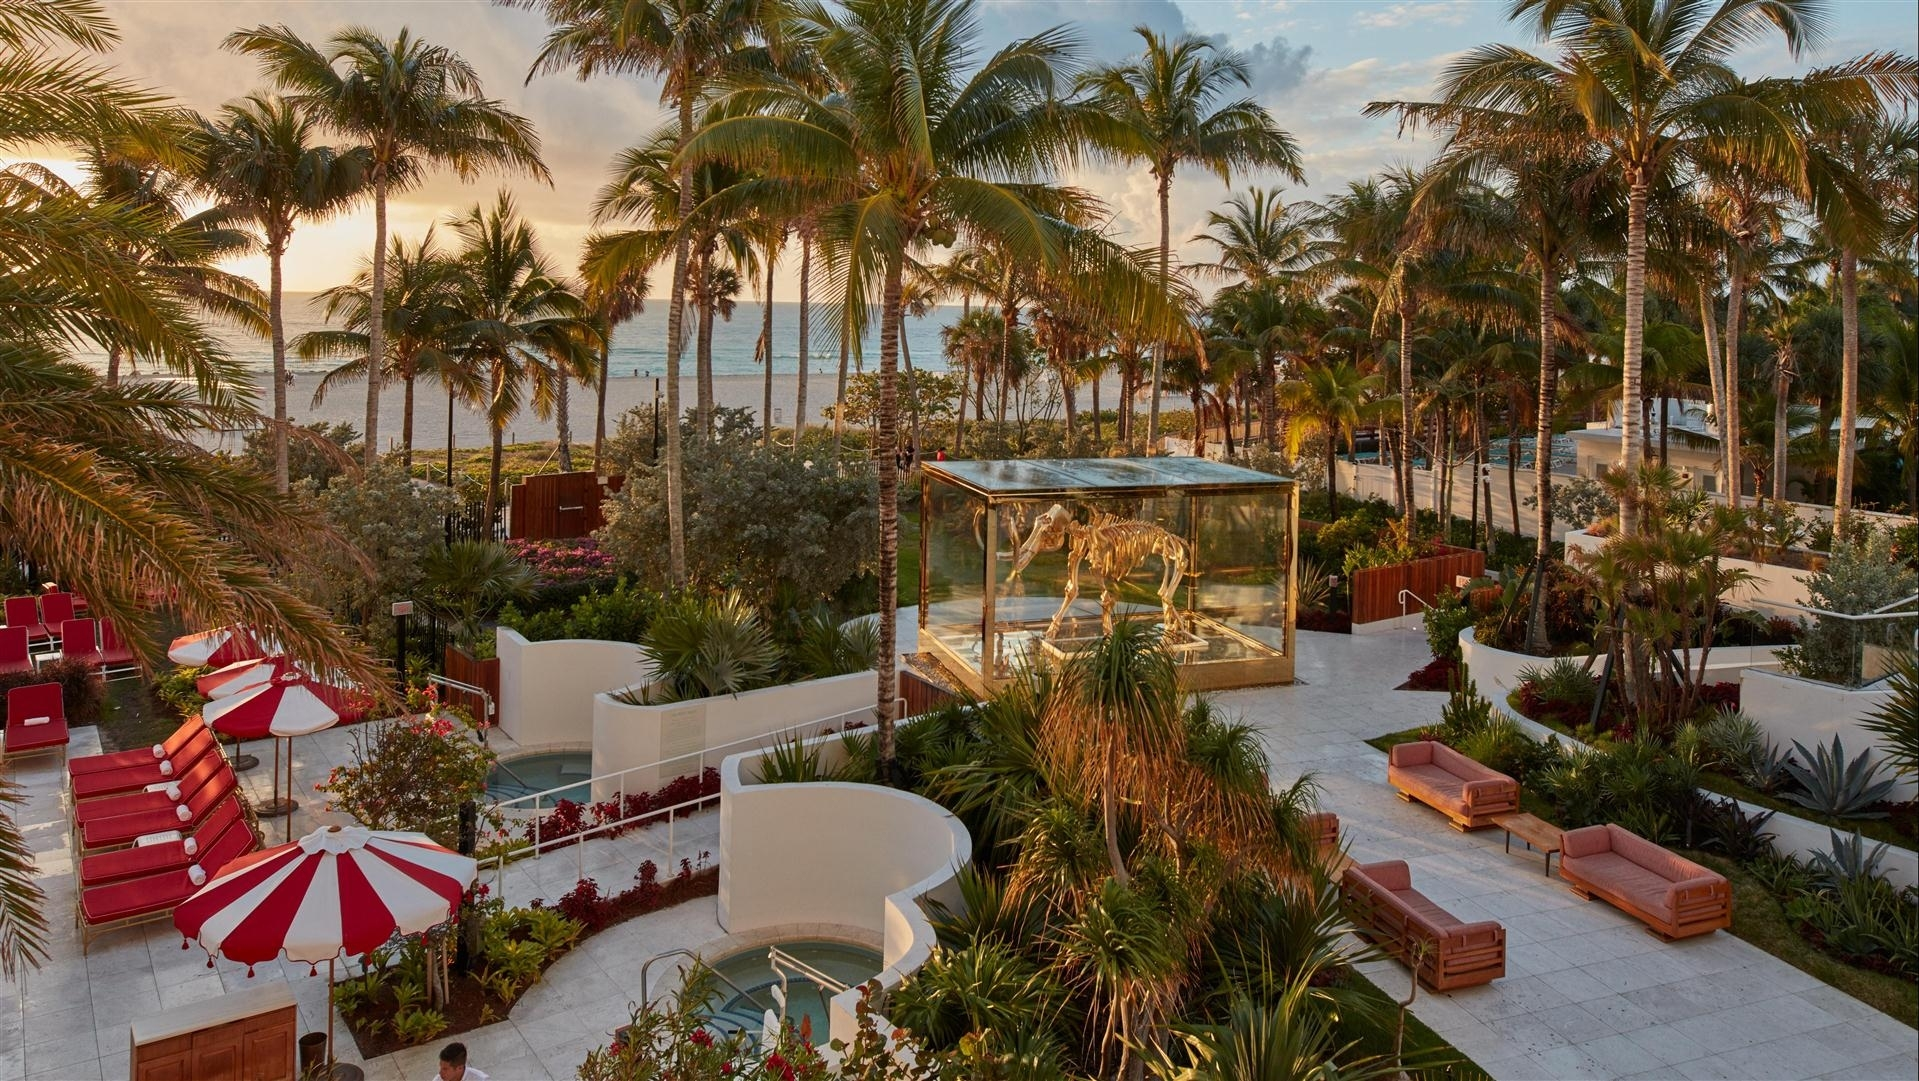 Meetings And Events At Faena Hotel Miami Beach, Miami Beach throughout Faena Hotel Miami Beach Map